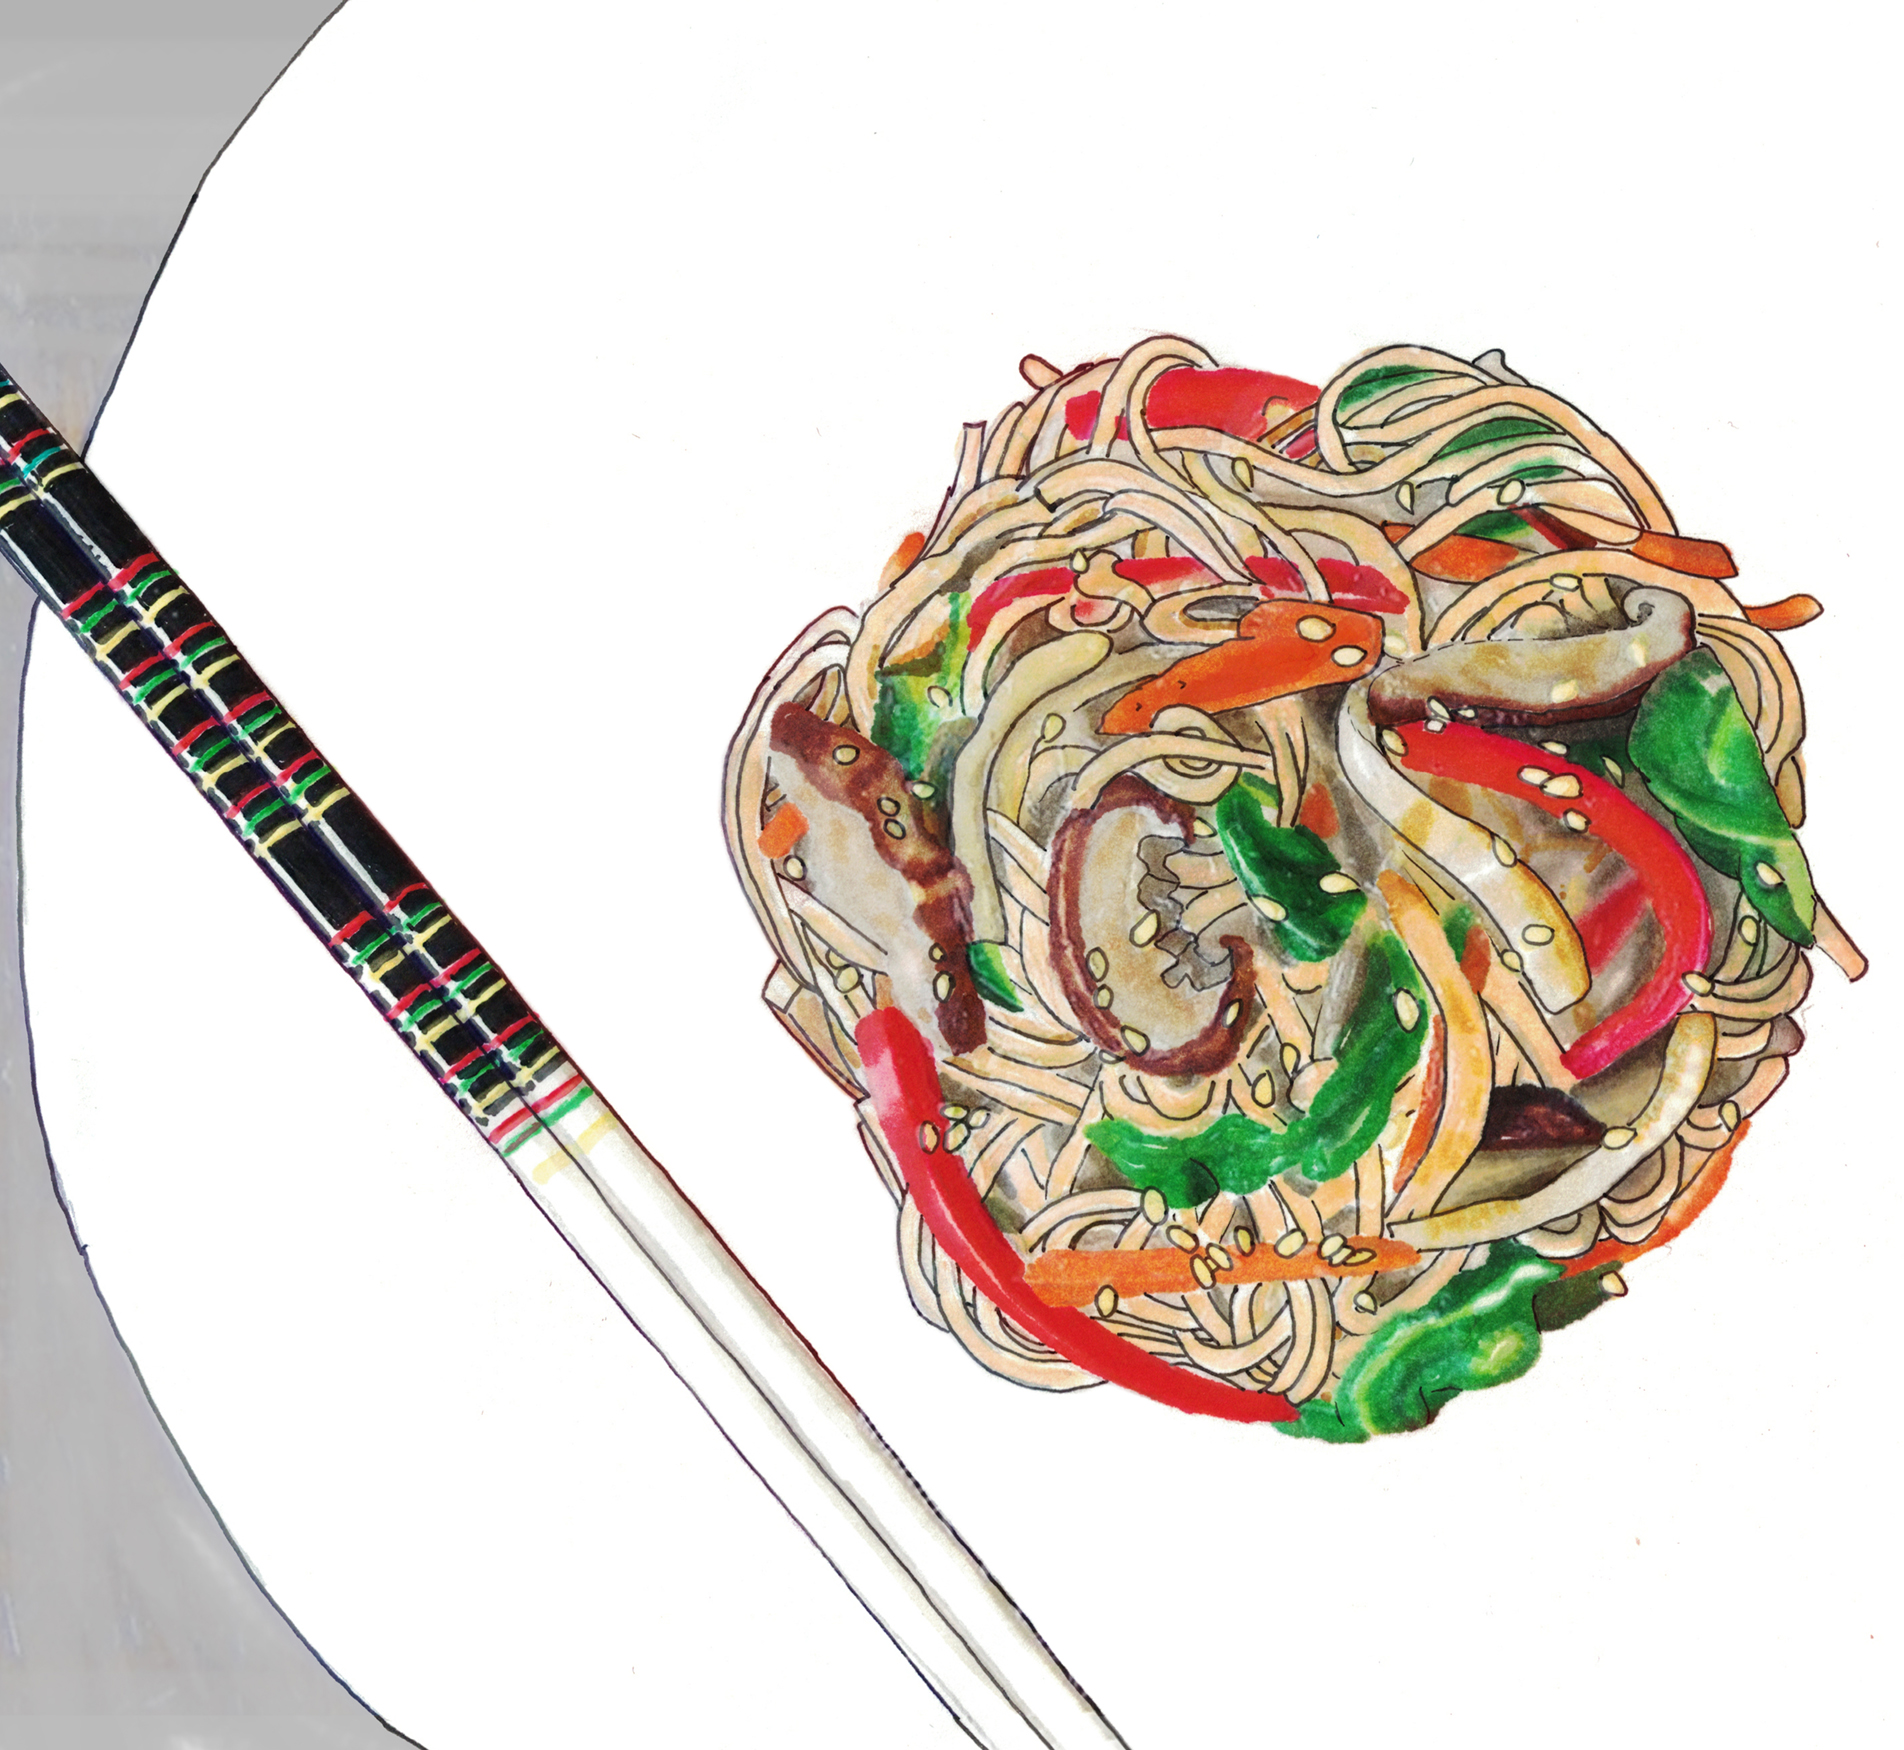 Shin's  japchae  recipe is extra easy to make. Her one-pan method is a foolproof way to get perfectly cooked sweet potato starch noodles.